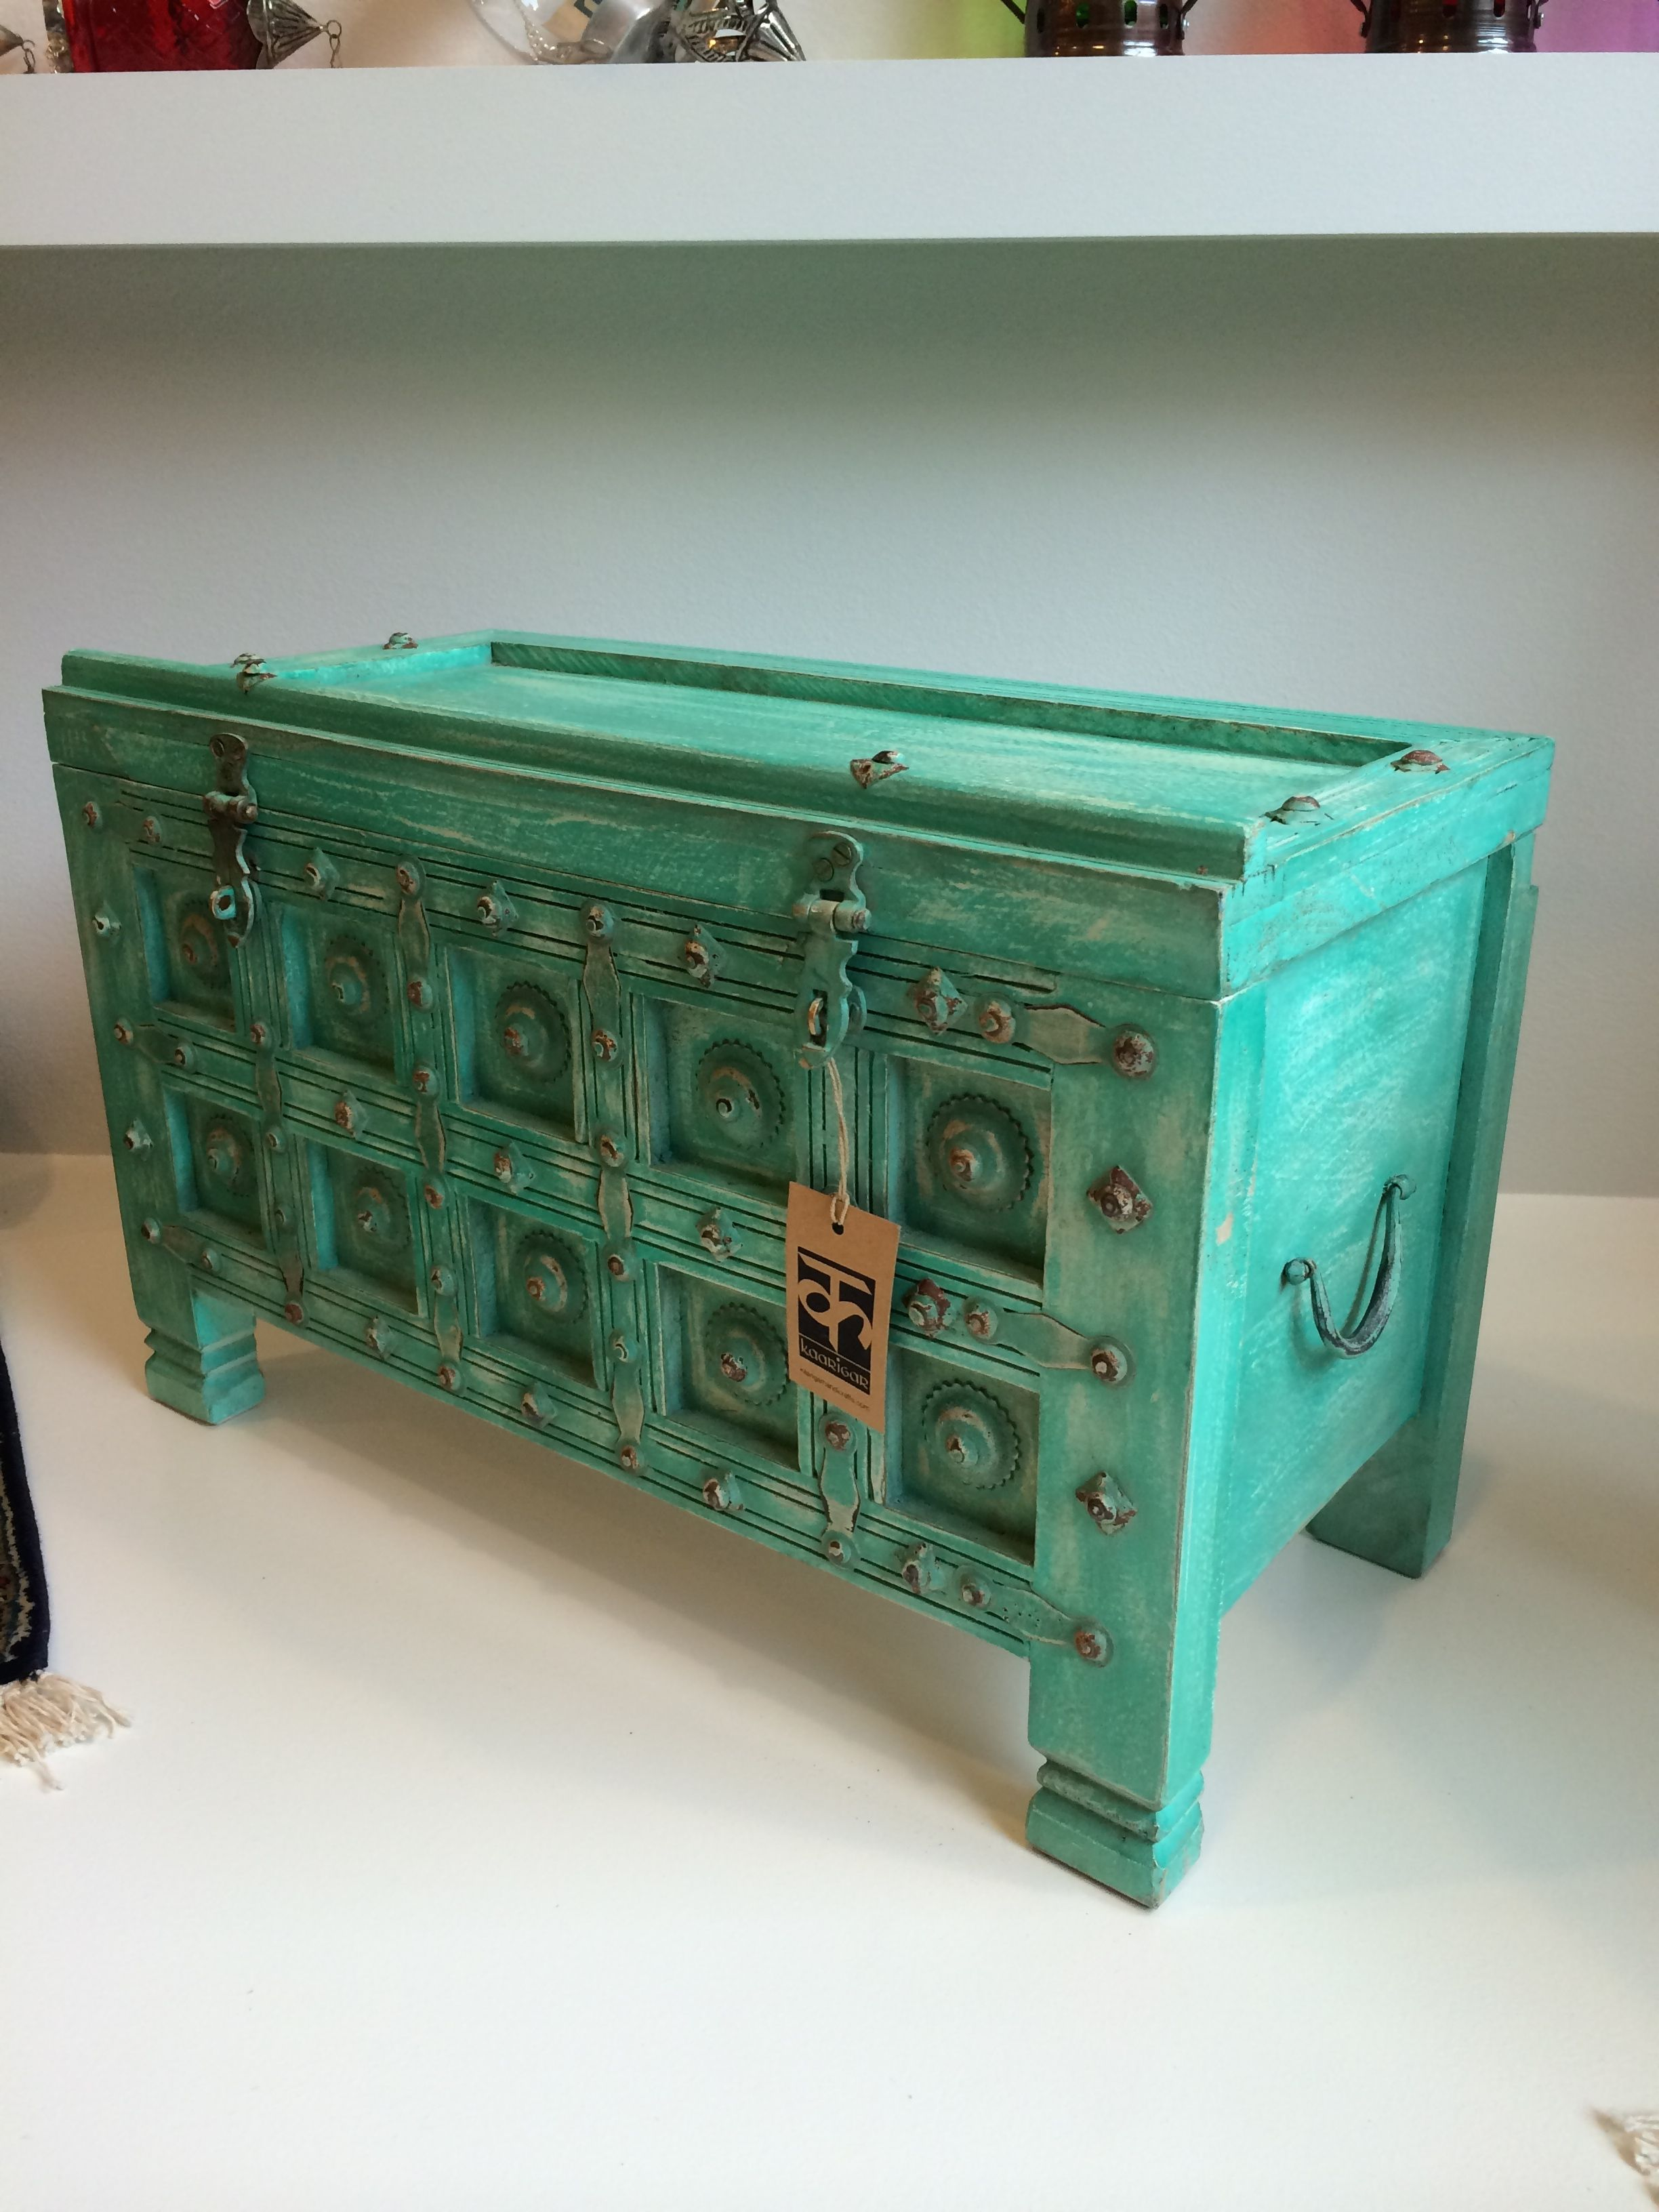 Hausfrontdesign in rajasthan ornate wooden chest from rajasthan india  modern  pinterest